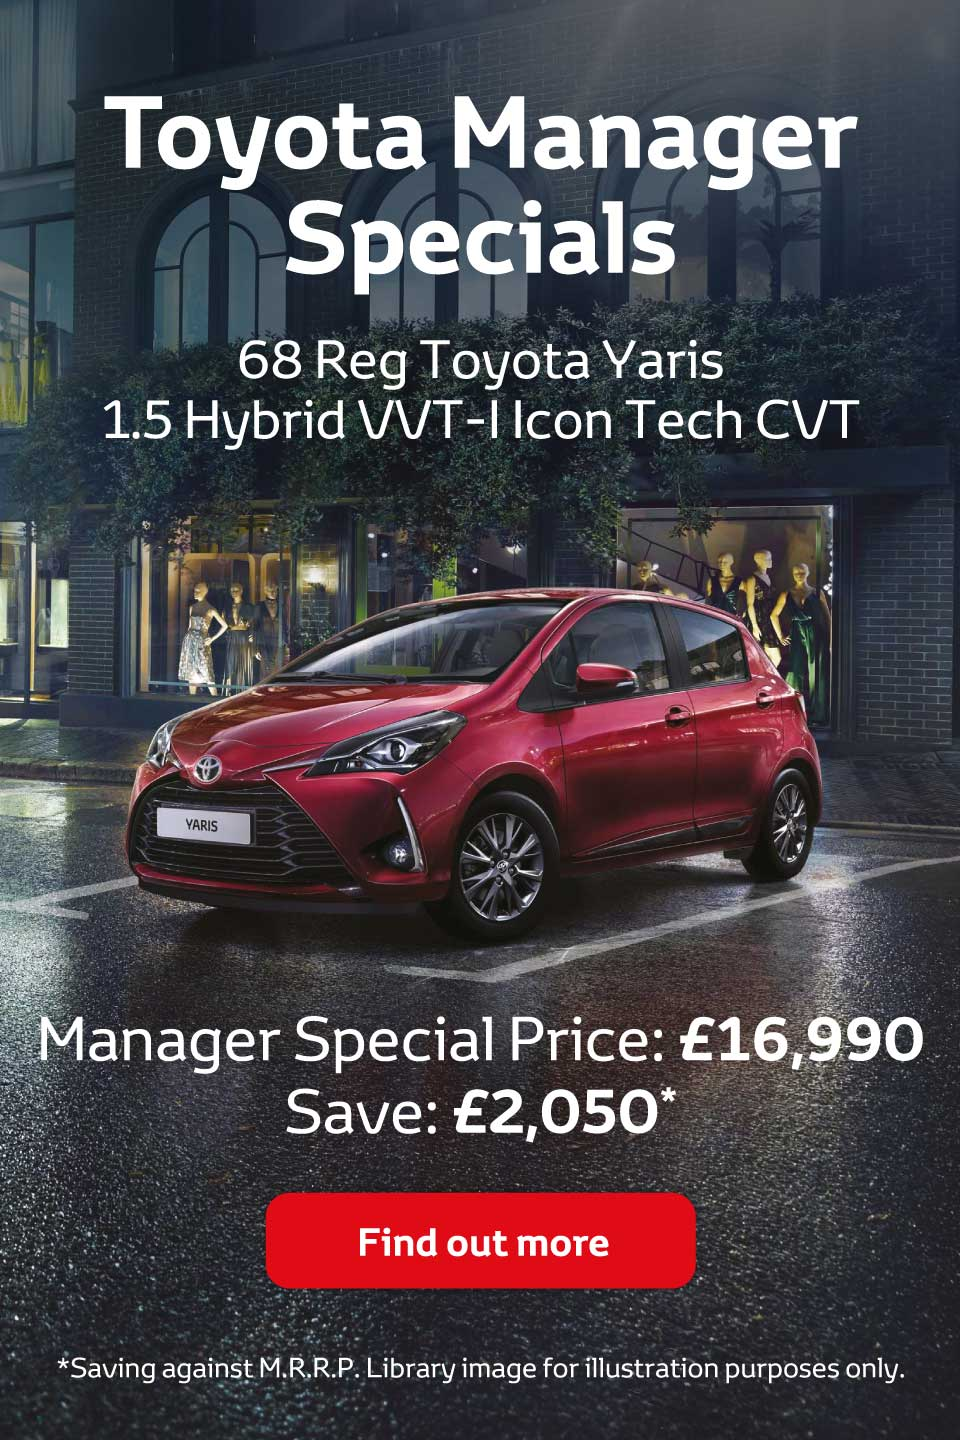 Toyota Manager Specials